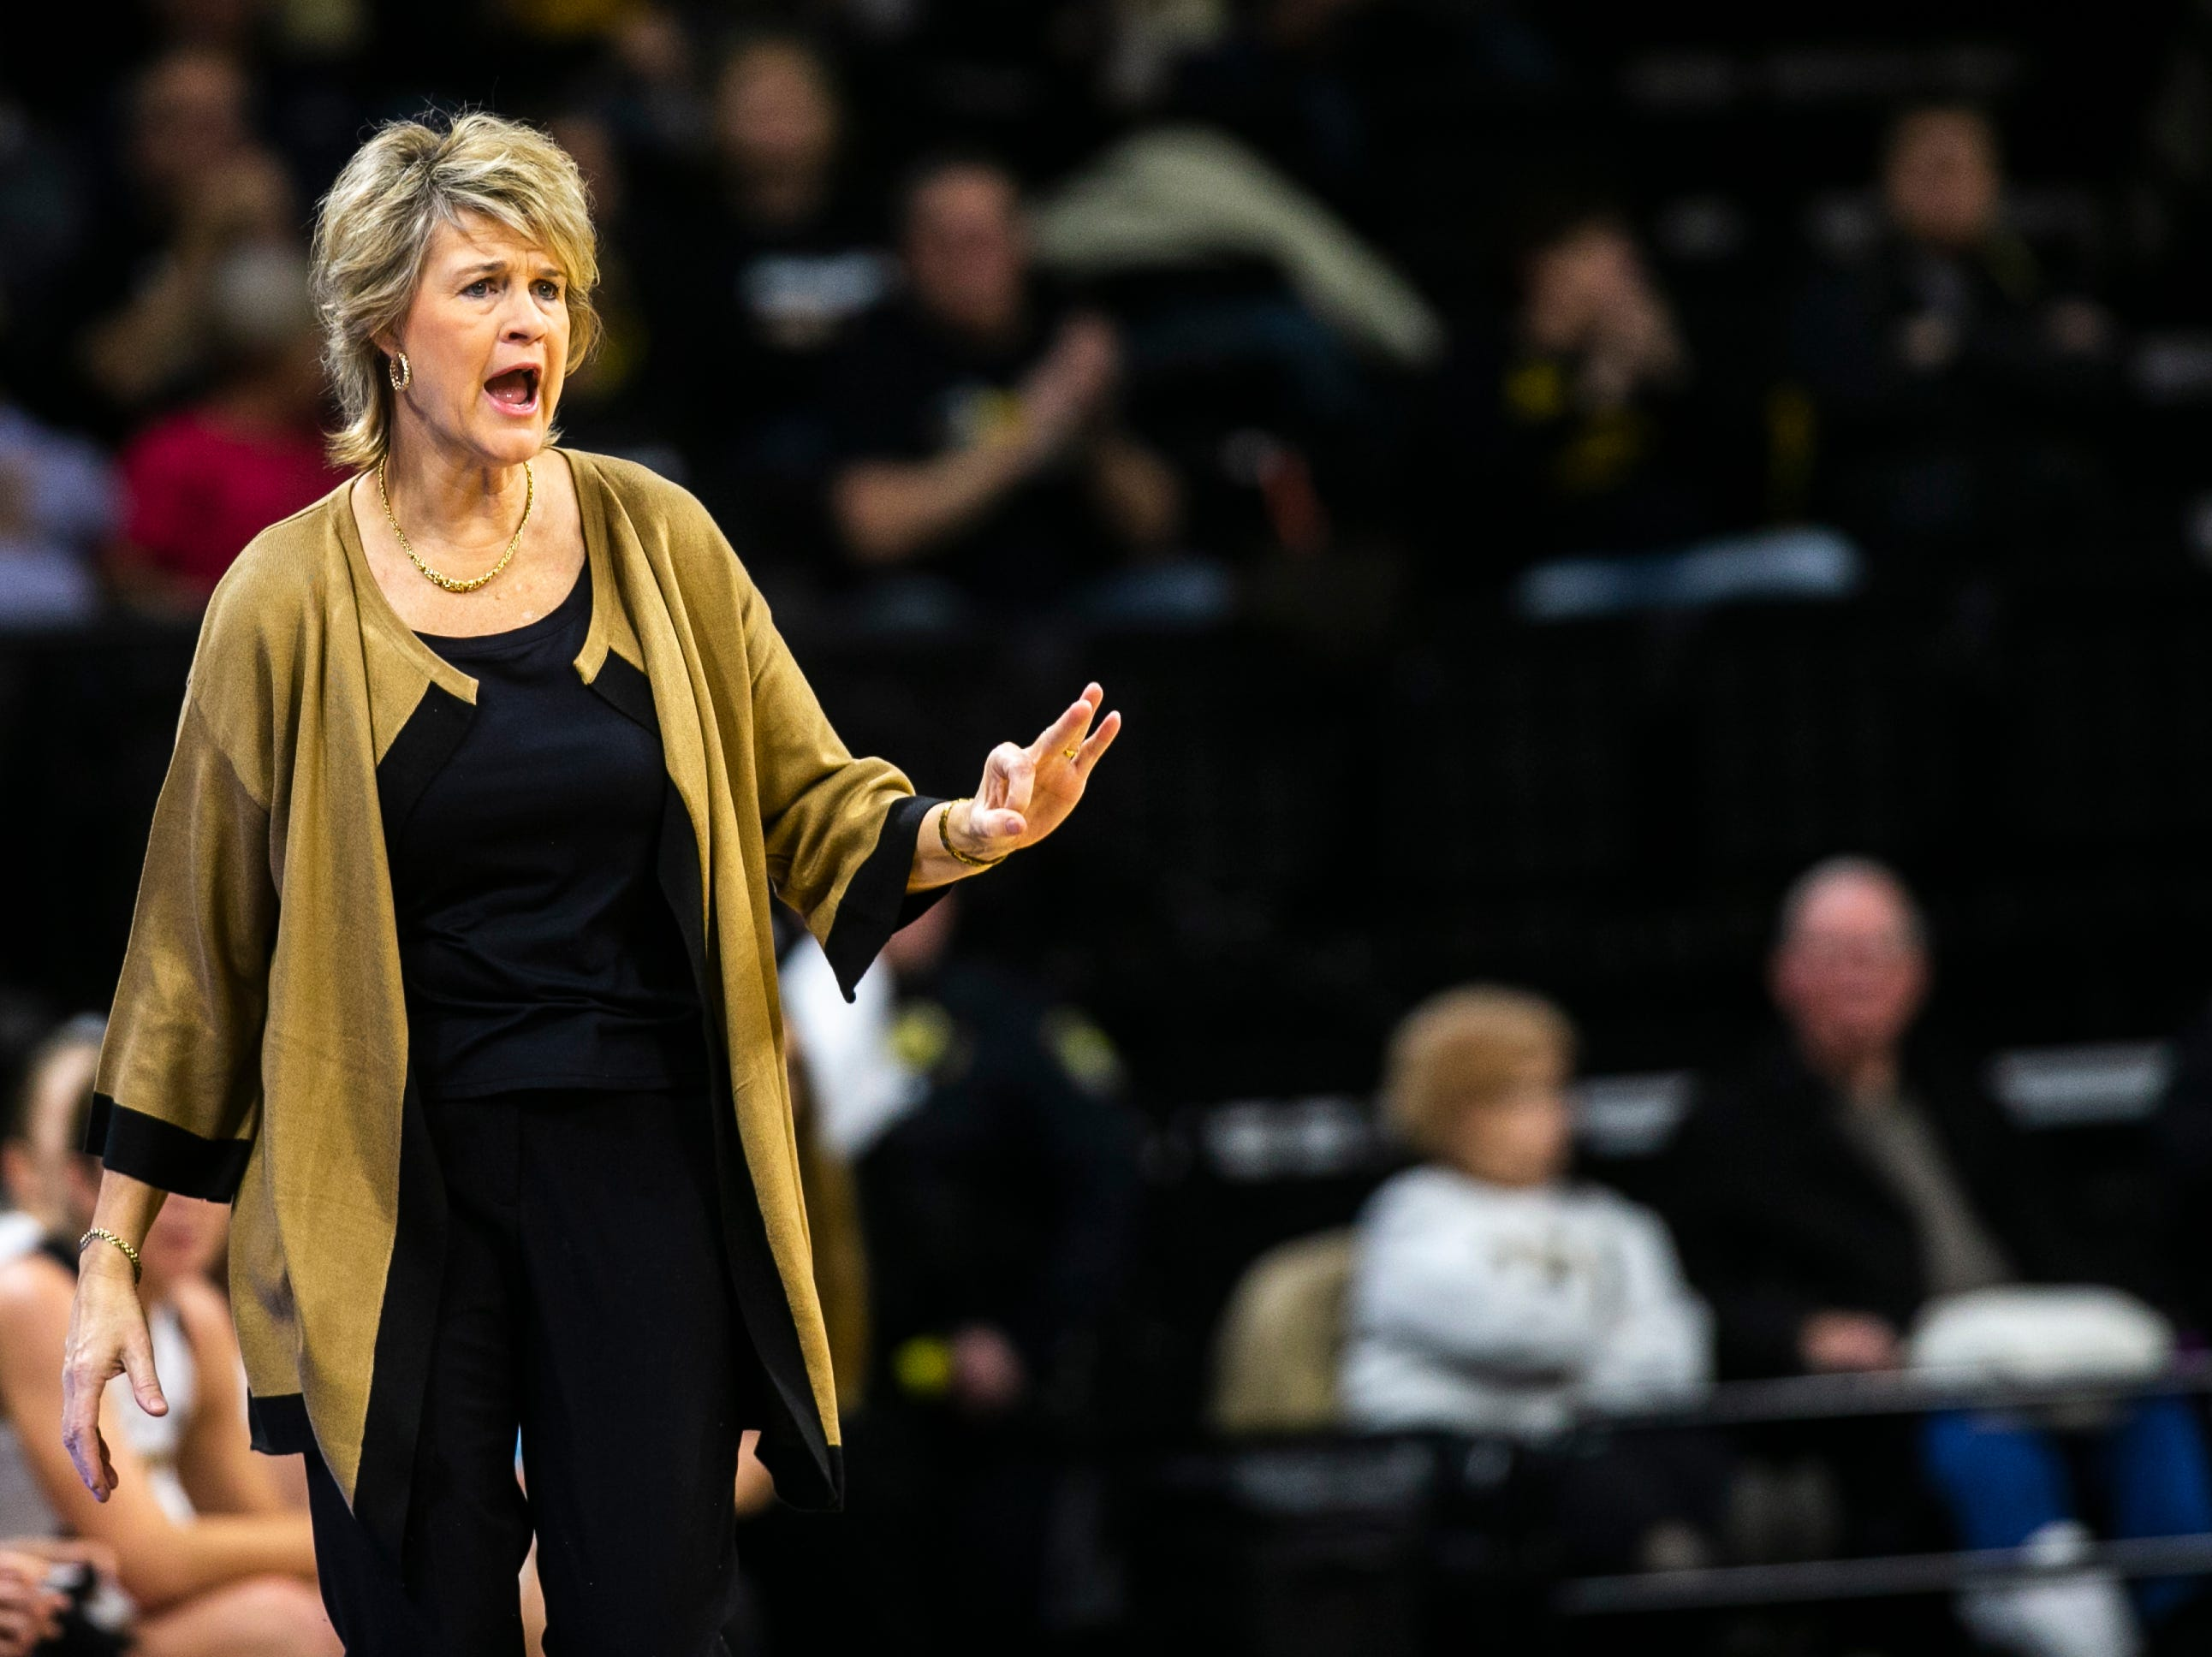 Iowa head coach Lisa Bluder calls out to players during a NCAA Big Ten Conference women's basketball game on Thursday, Jan. 17, 2019, at Carver-Hawkeye Arena in Iowa City, Iowa.